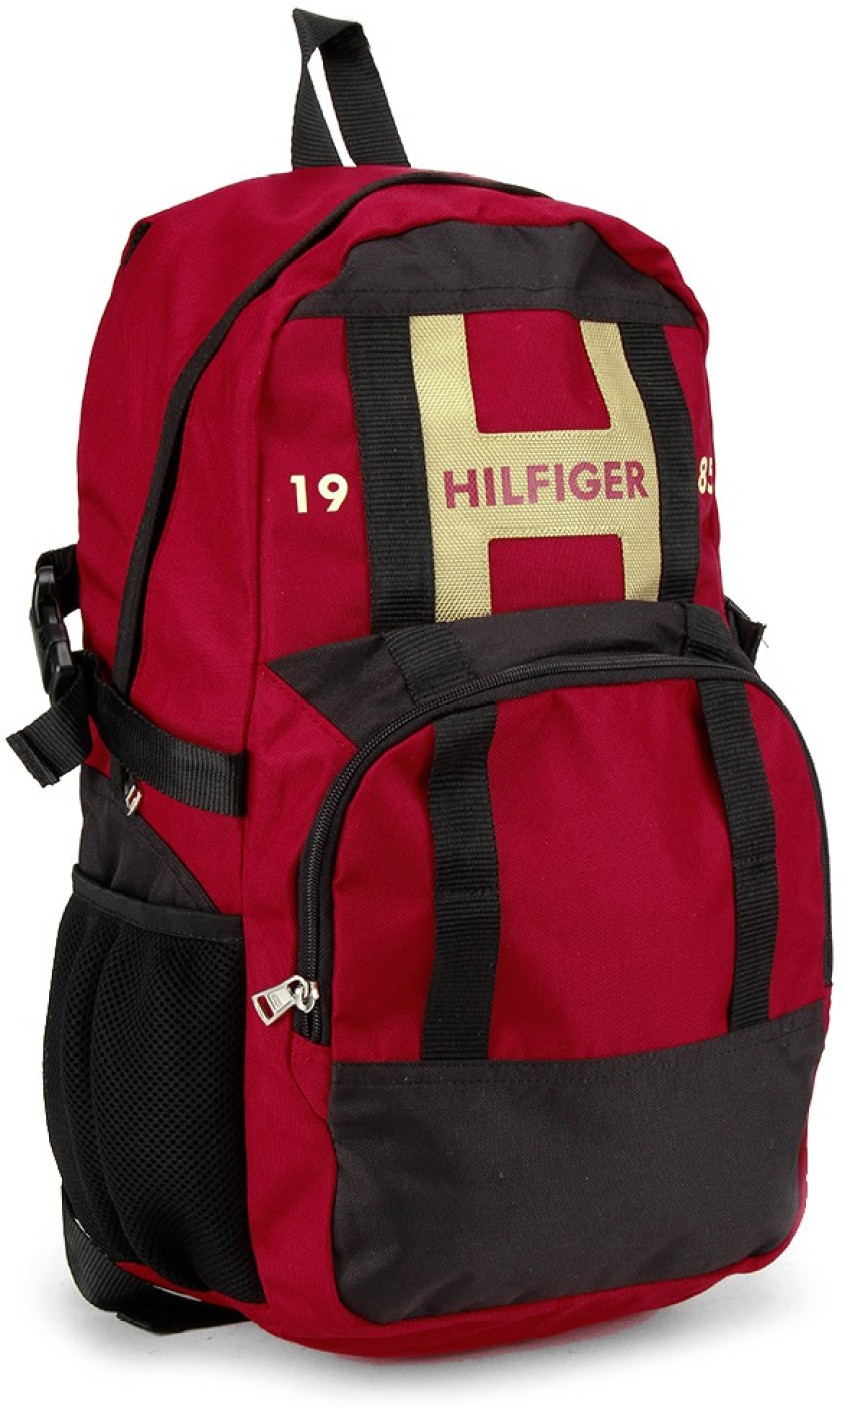 561c195d996 Tommy Hilfiger Backpack 17 Related Keywords & Suggestions - Tommy ...